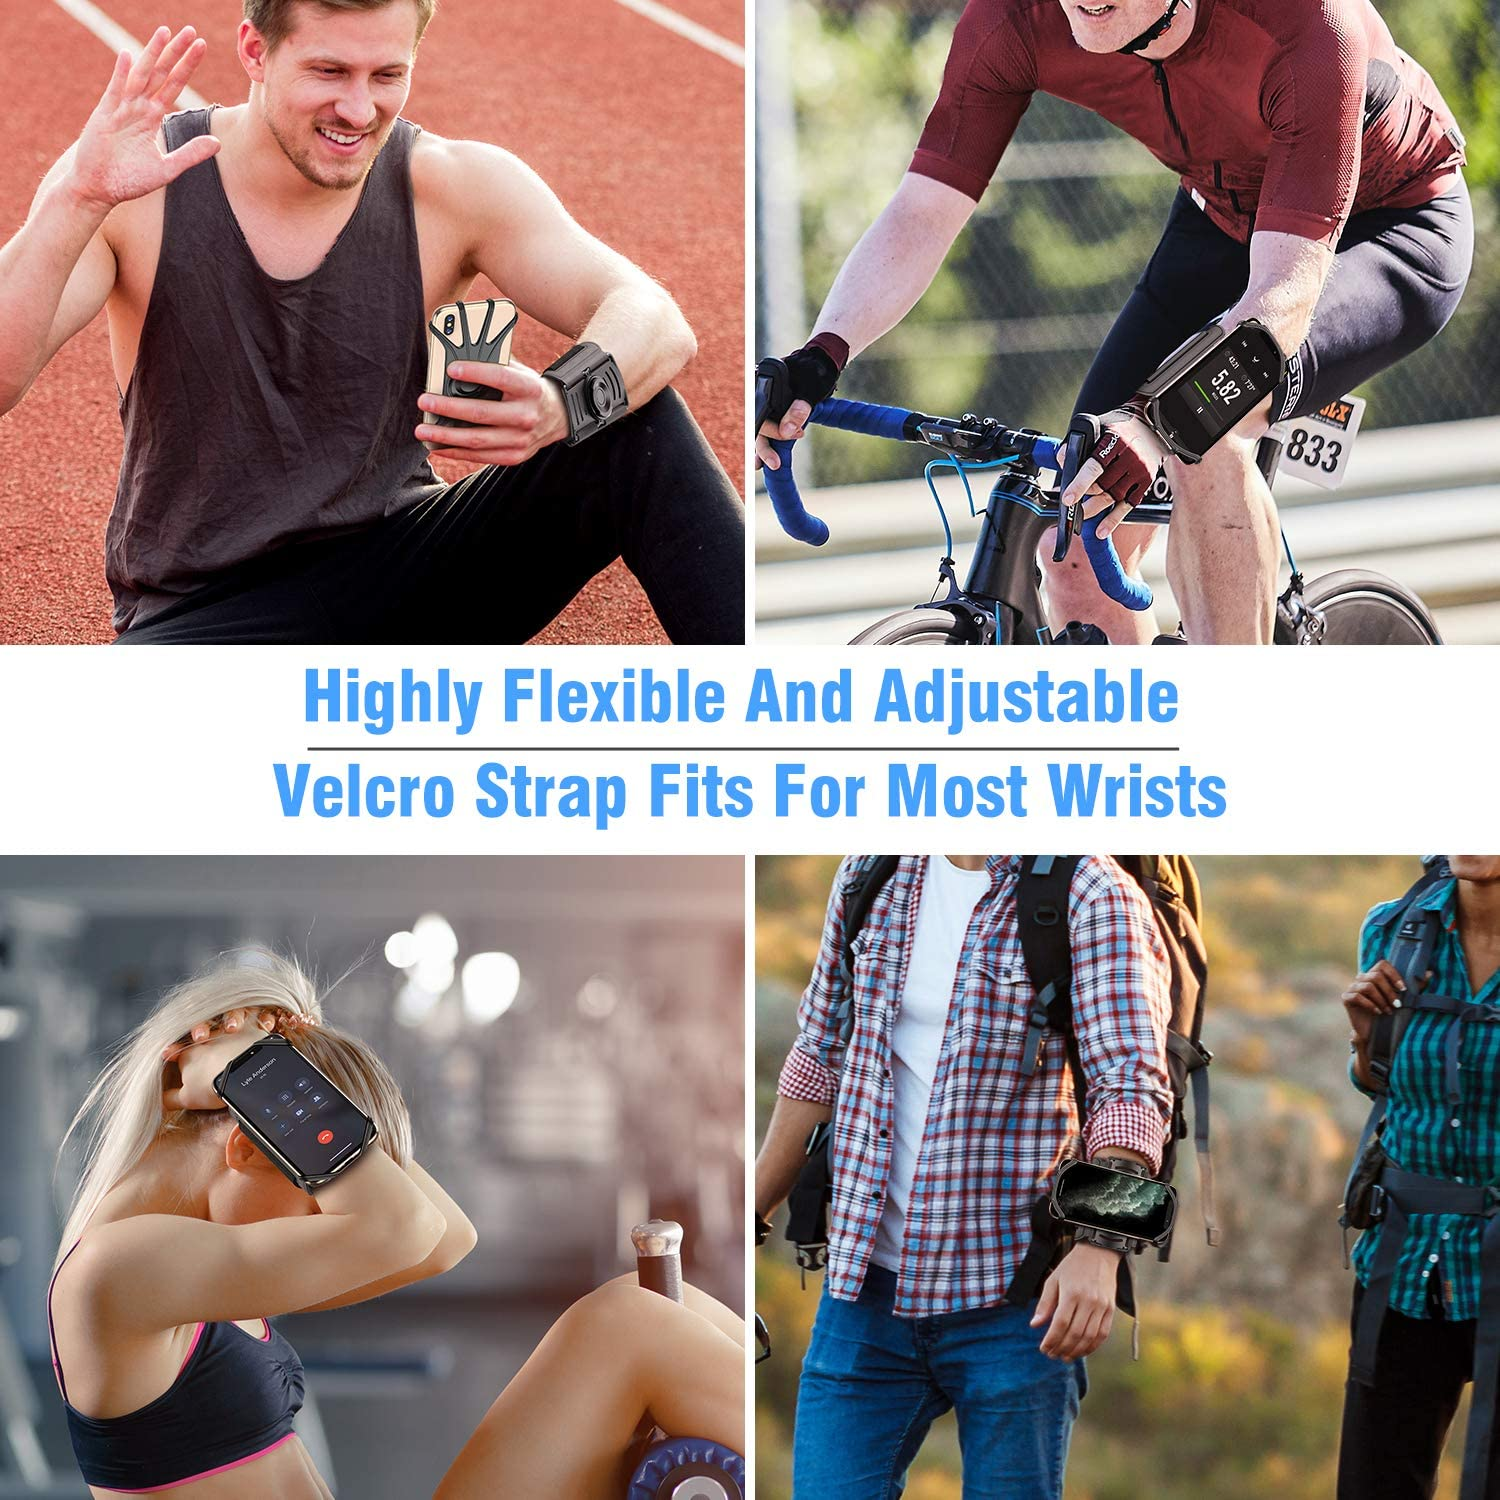 VUP Wristband Phone Holder 360/° Rotatable /& Detachable Sports Wristband for iPhone 11 Pro Max XR XS X 8 7 6 6s Plus 4-6.5Phones Black Great for Hiking Biking Walking Gym Google Pixel Galaxy